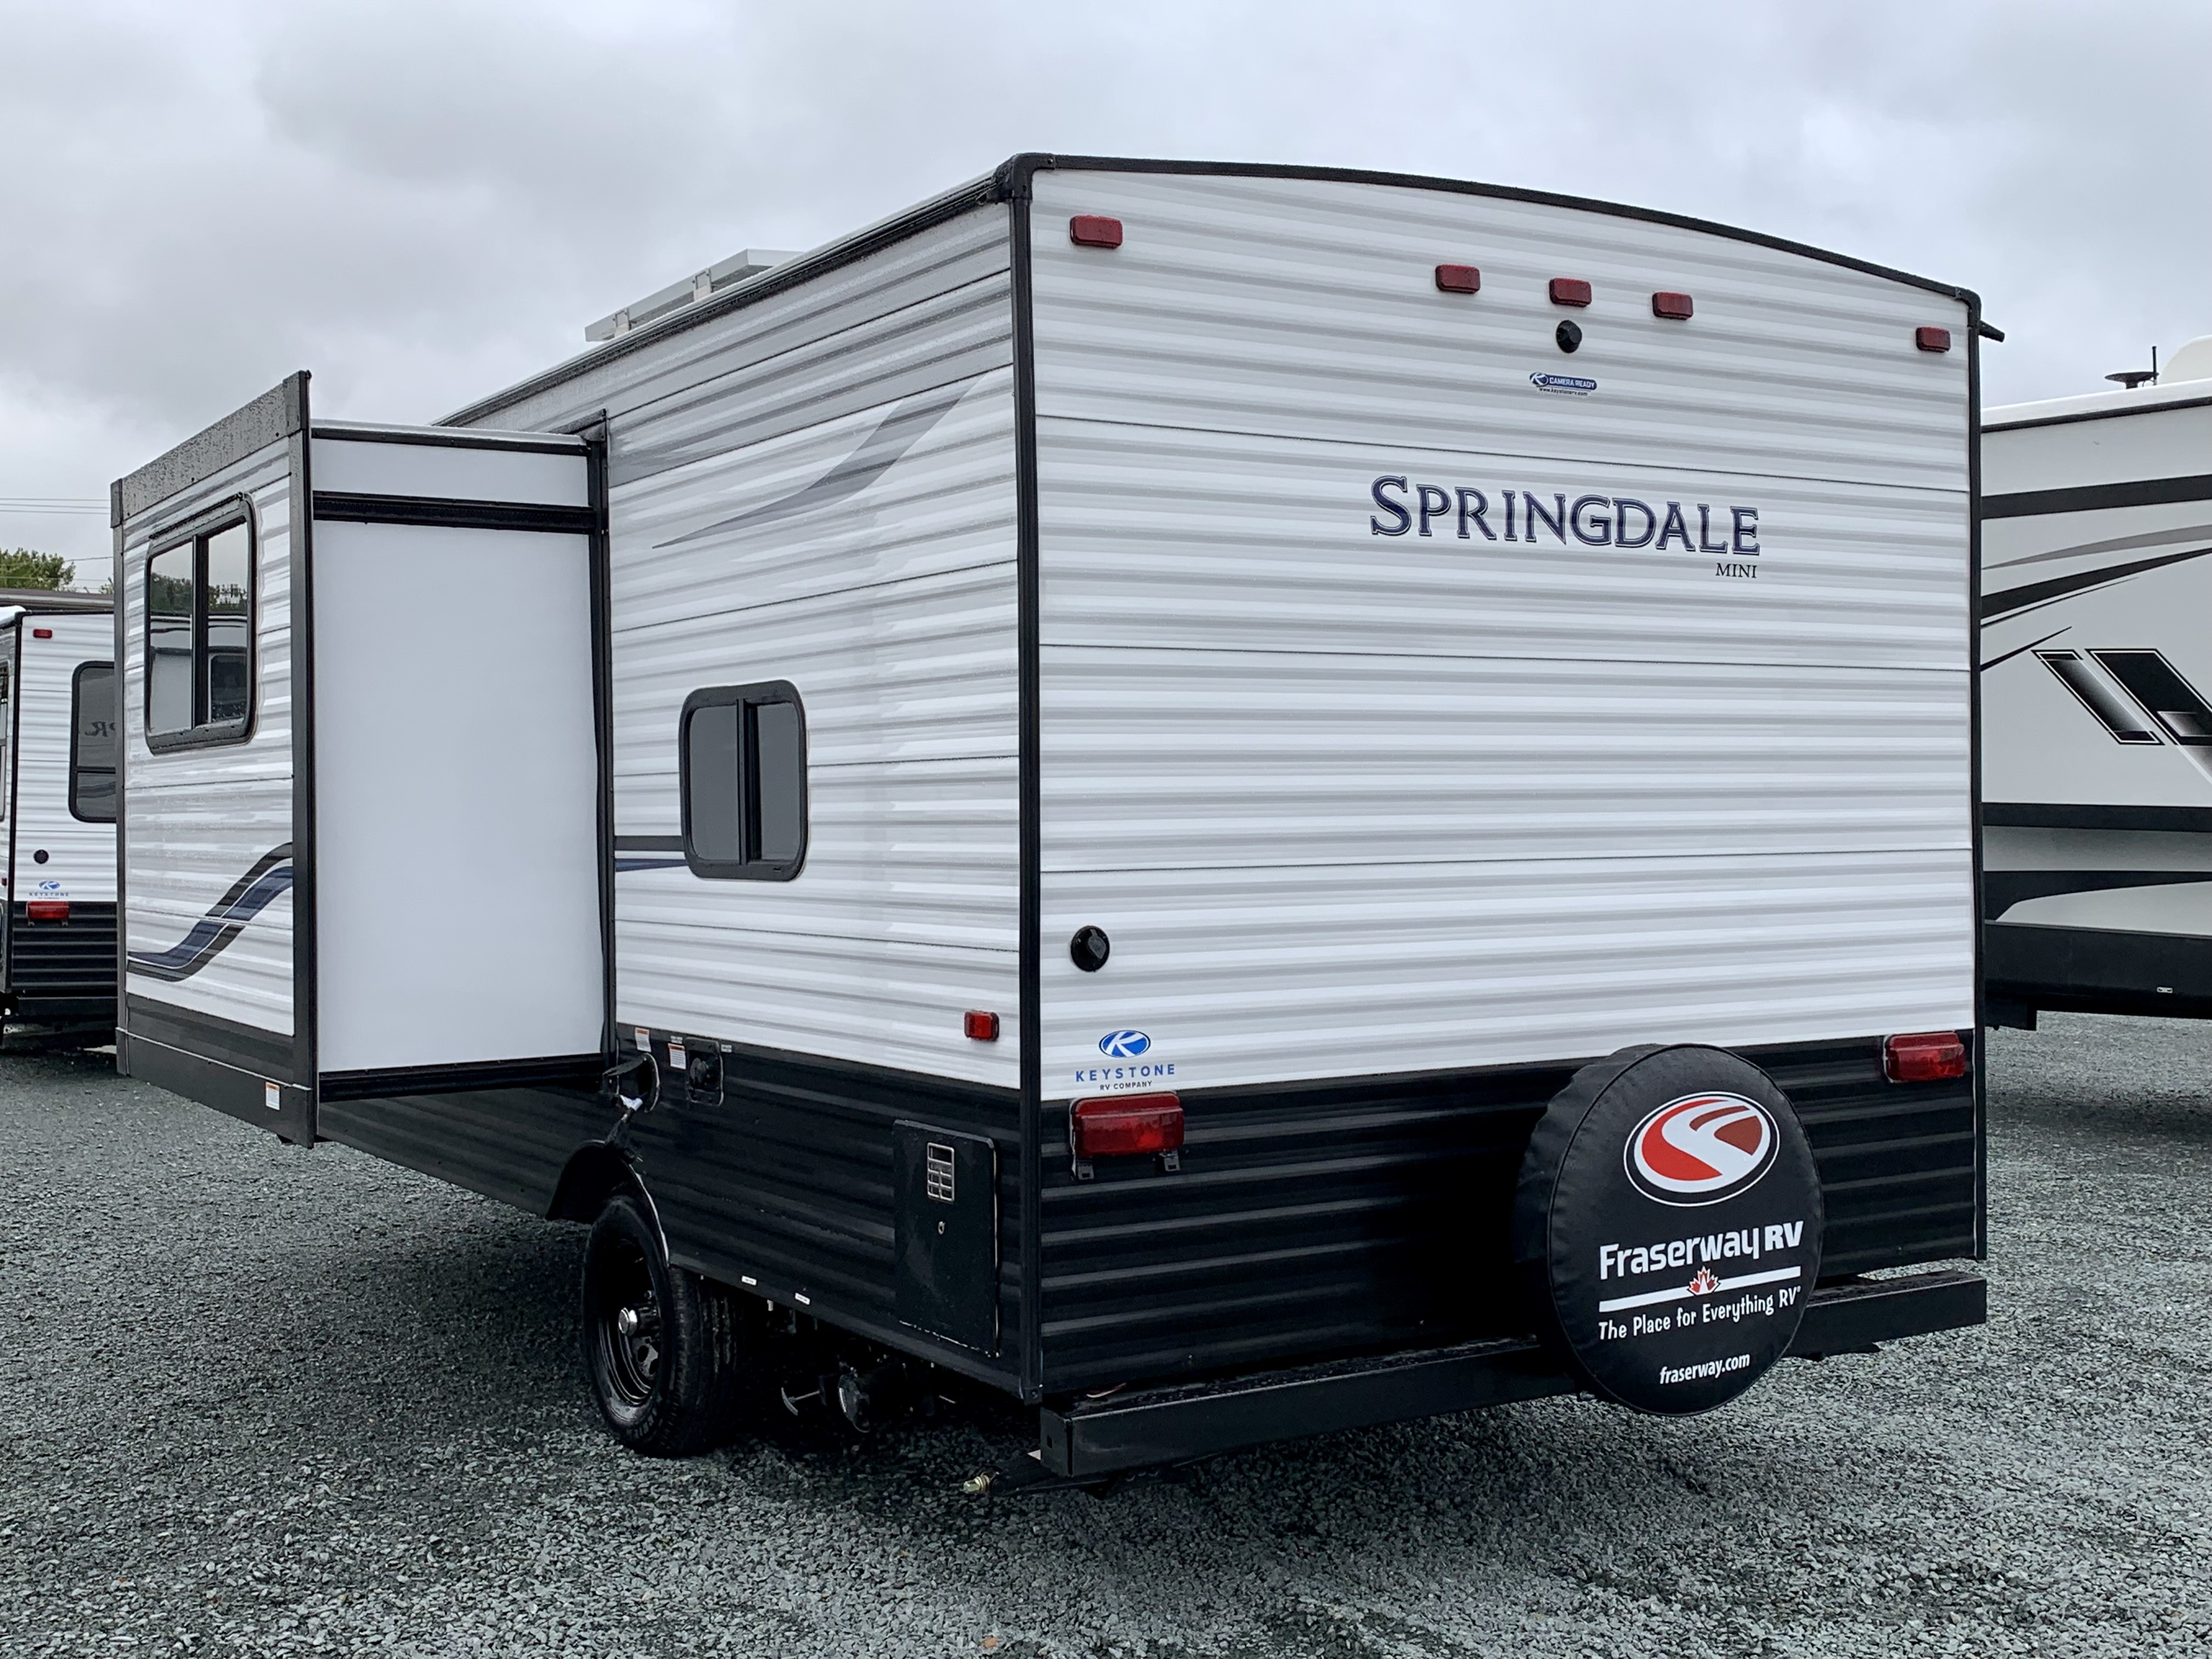 2022 KEYSTONE SPRINGDALE 1760BH NEW TRAVEL TRAILER WITH BUNKS FOR SALE HALIFAX NS